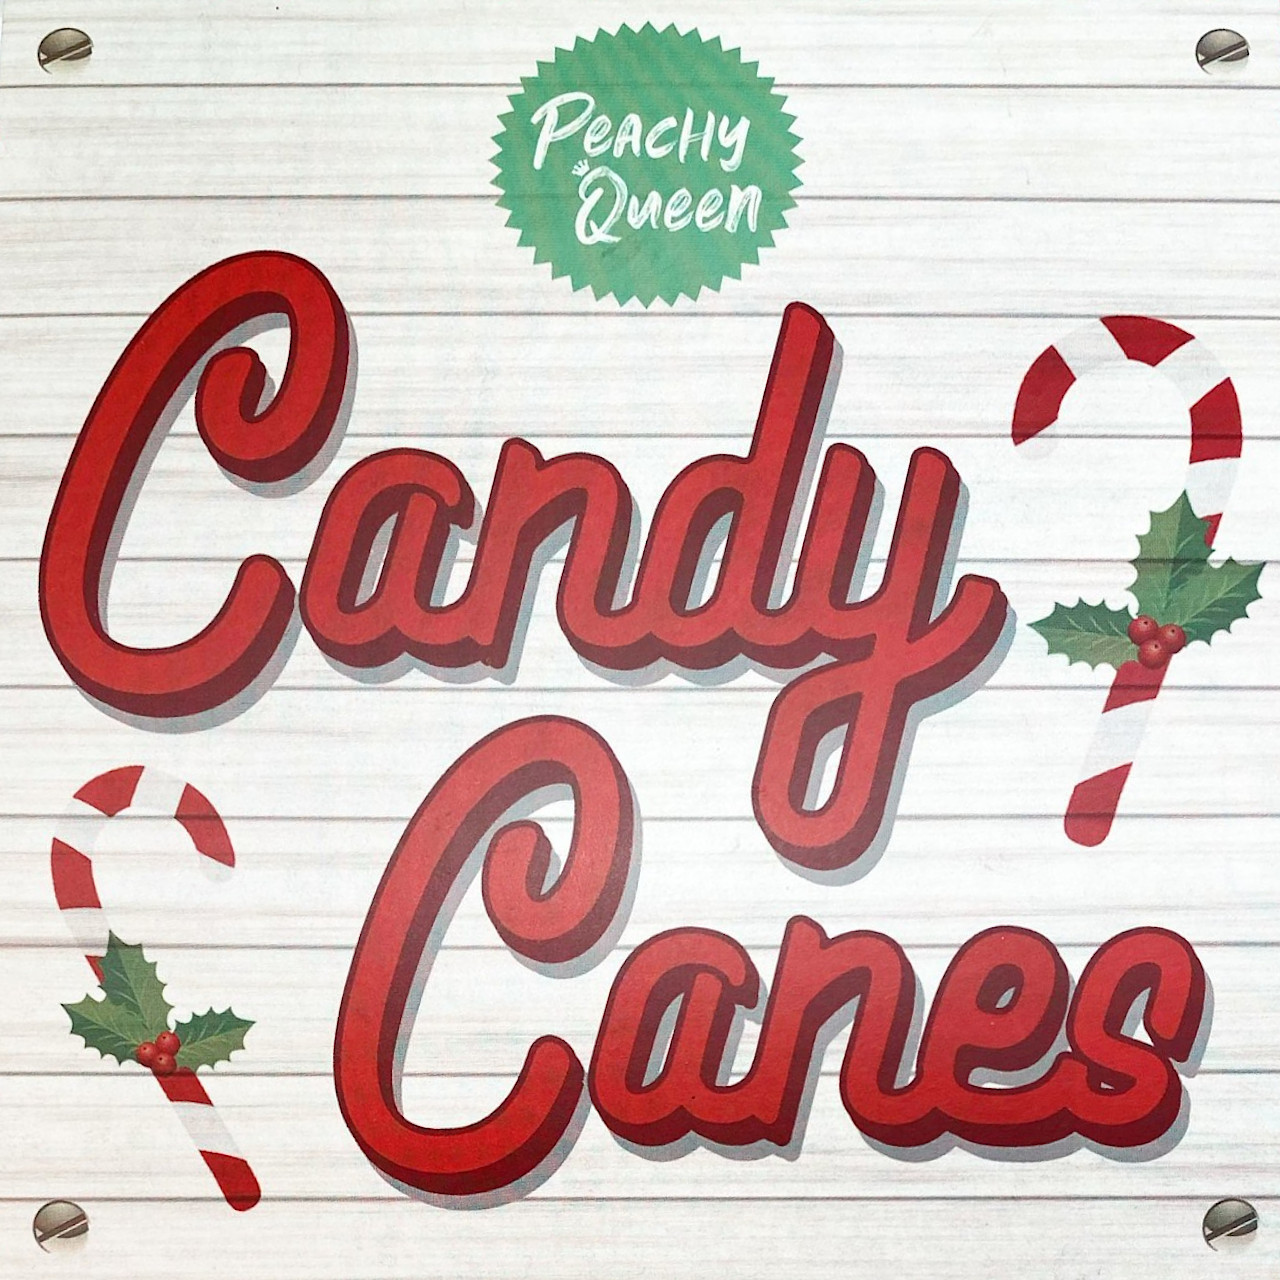 Peachy Queen Candy Canes Palette Cover Closer